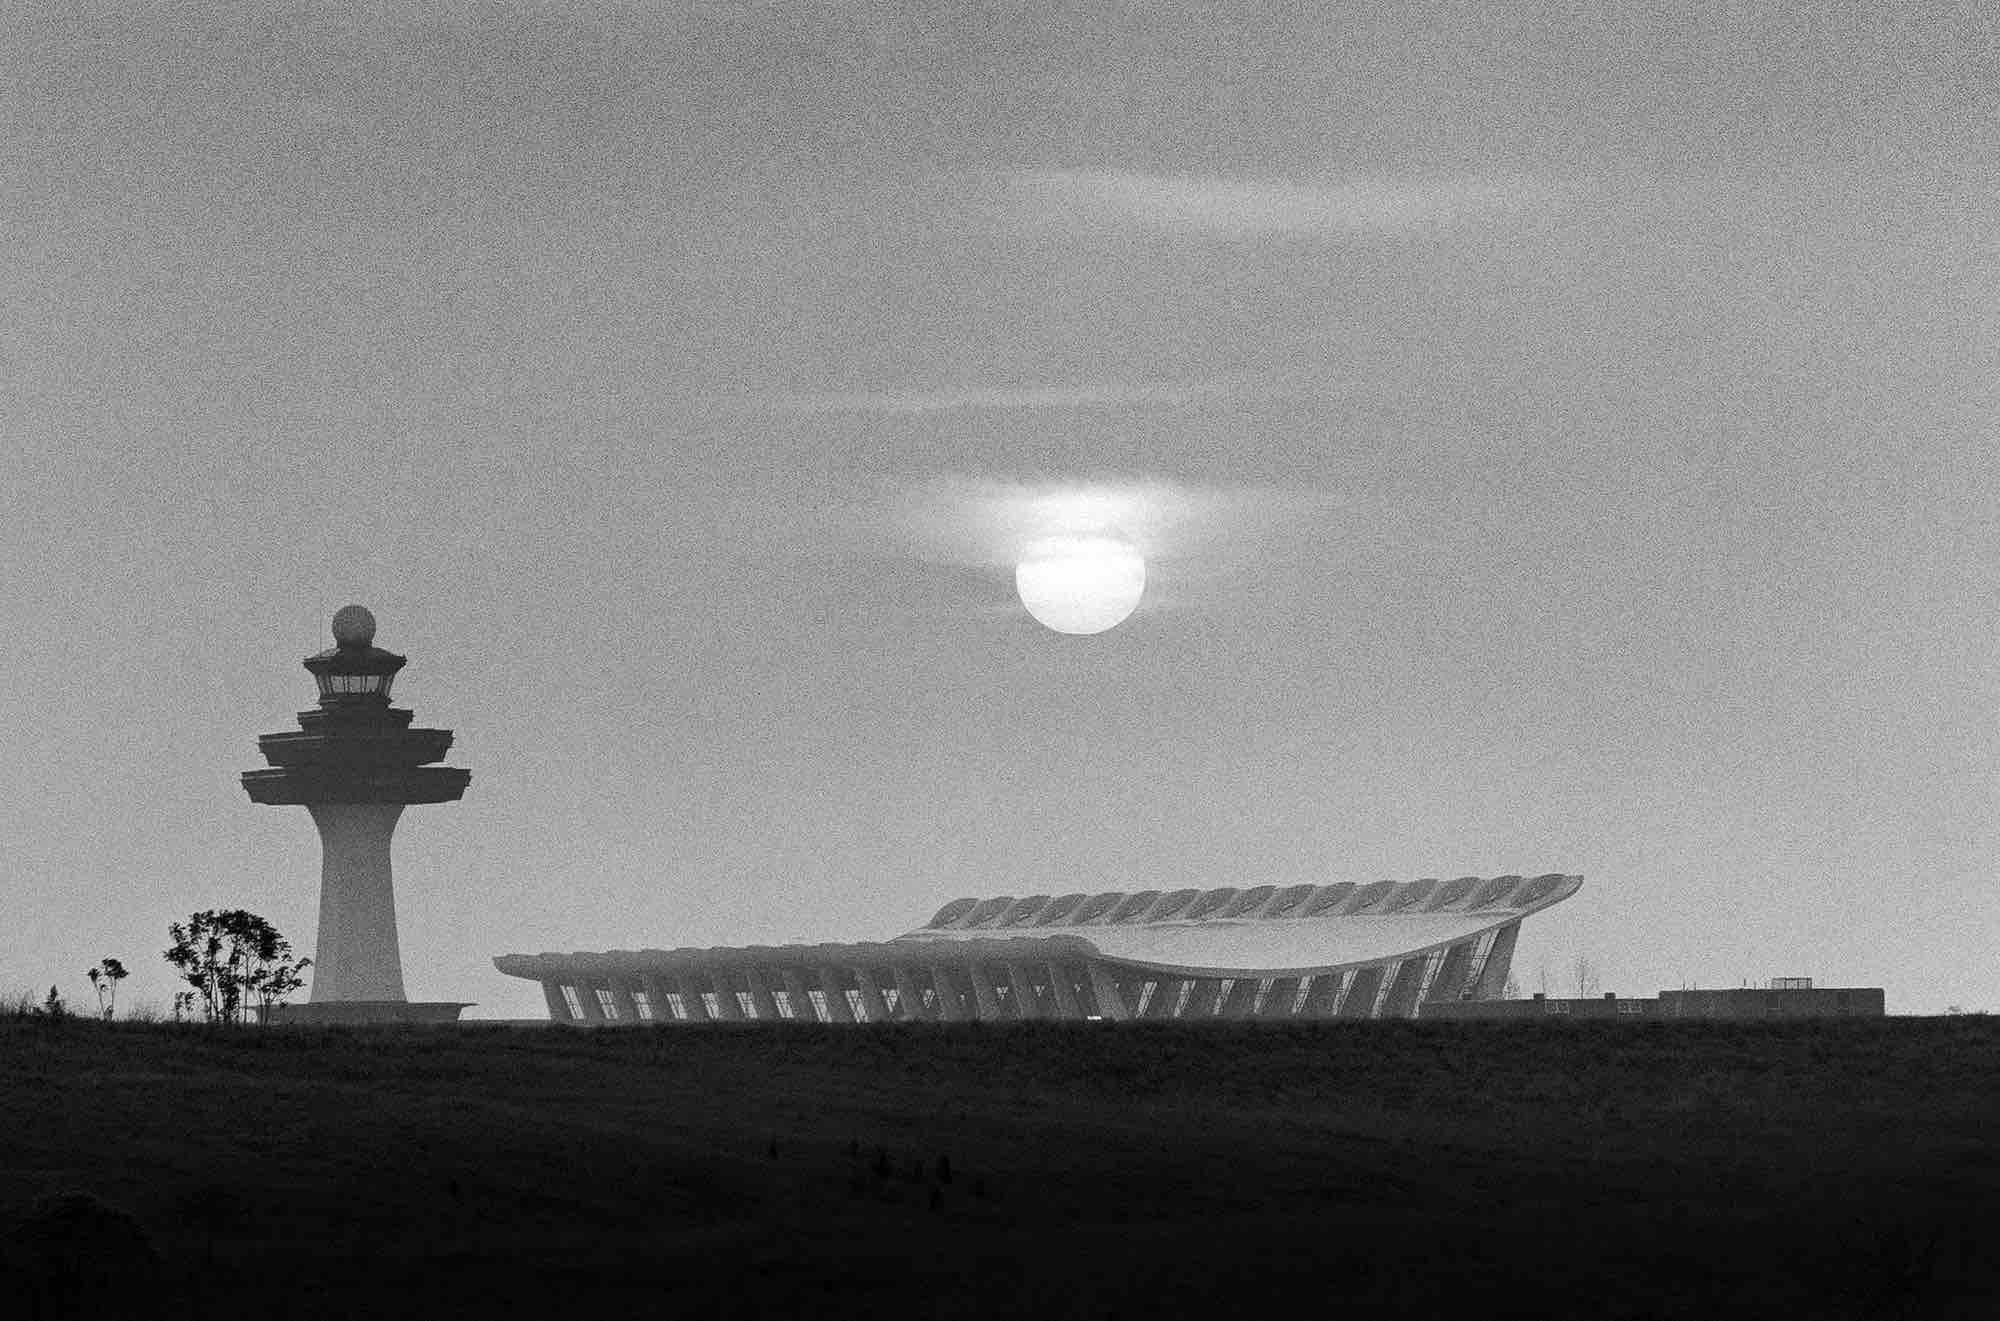 Eero Saarinen, Washington Dulles International Airport (Washington, D.C.) 1962